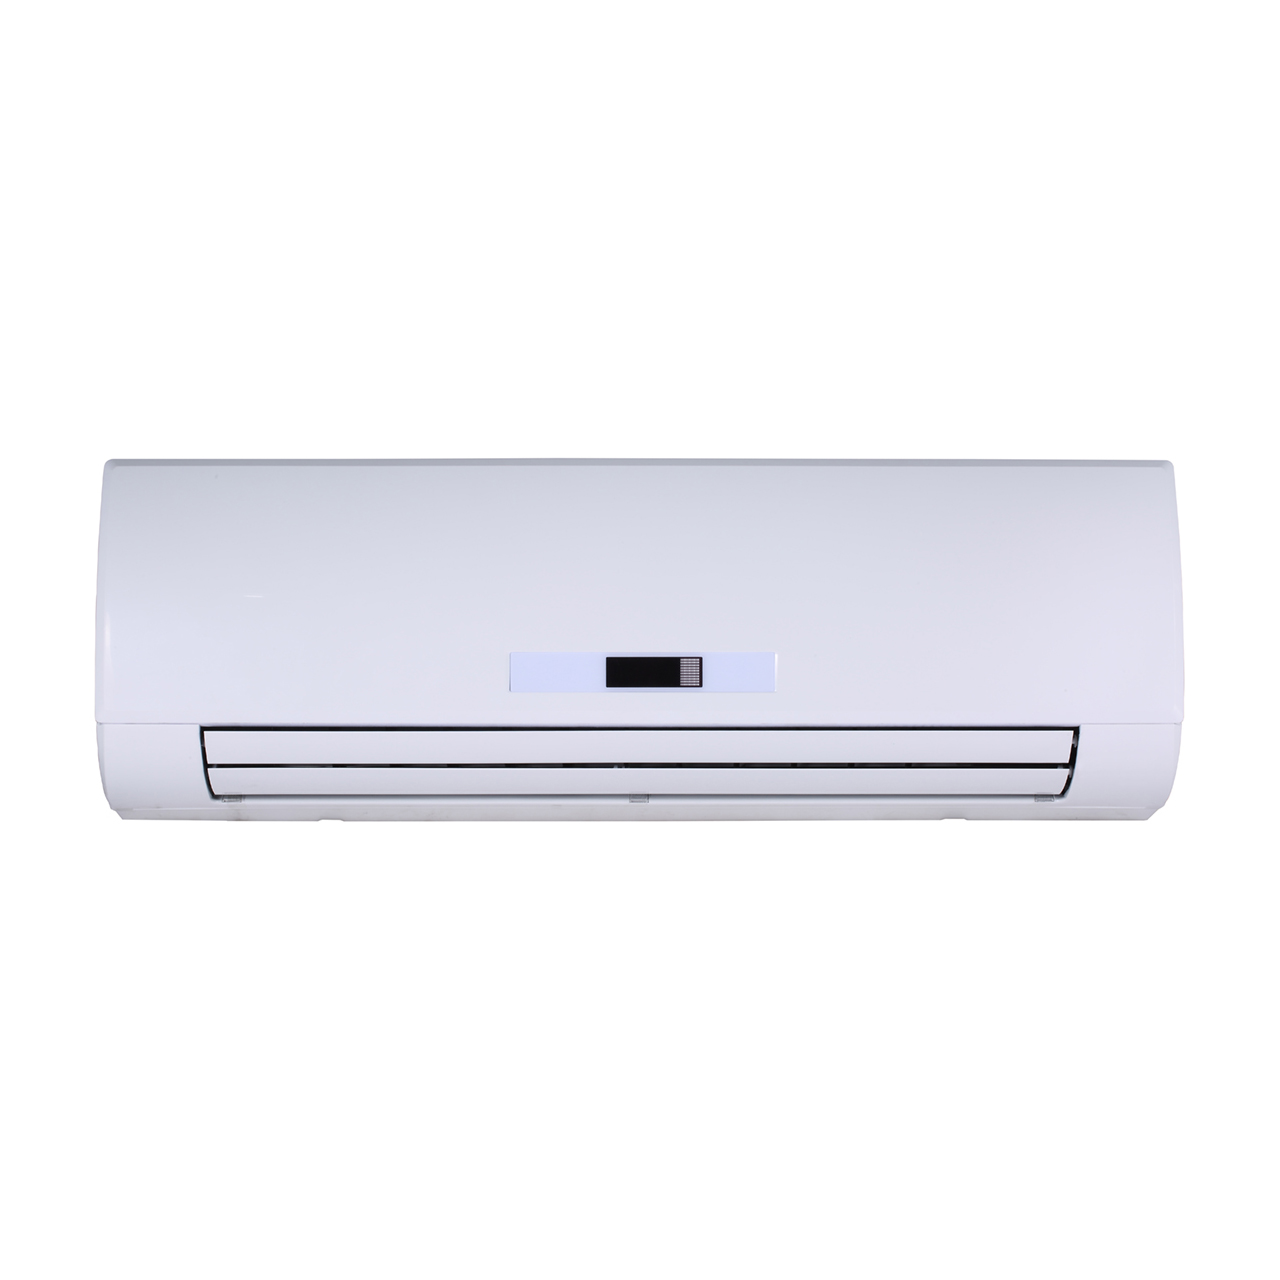 carrier-40vmw-24-30k-high-wall-indoor-unit